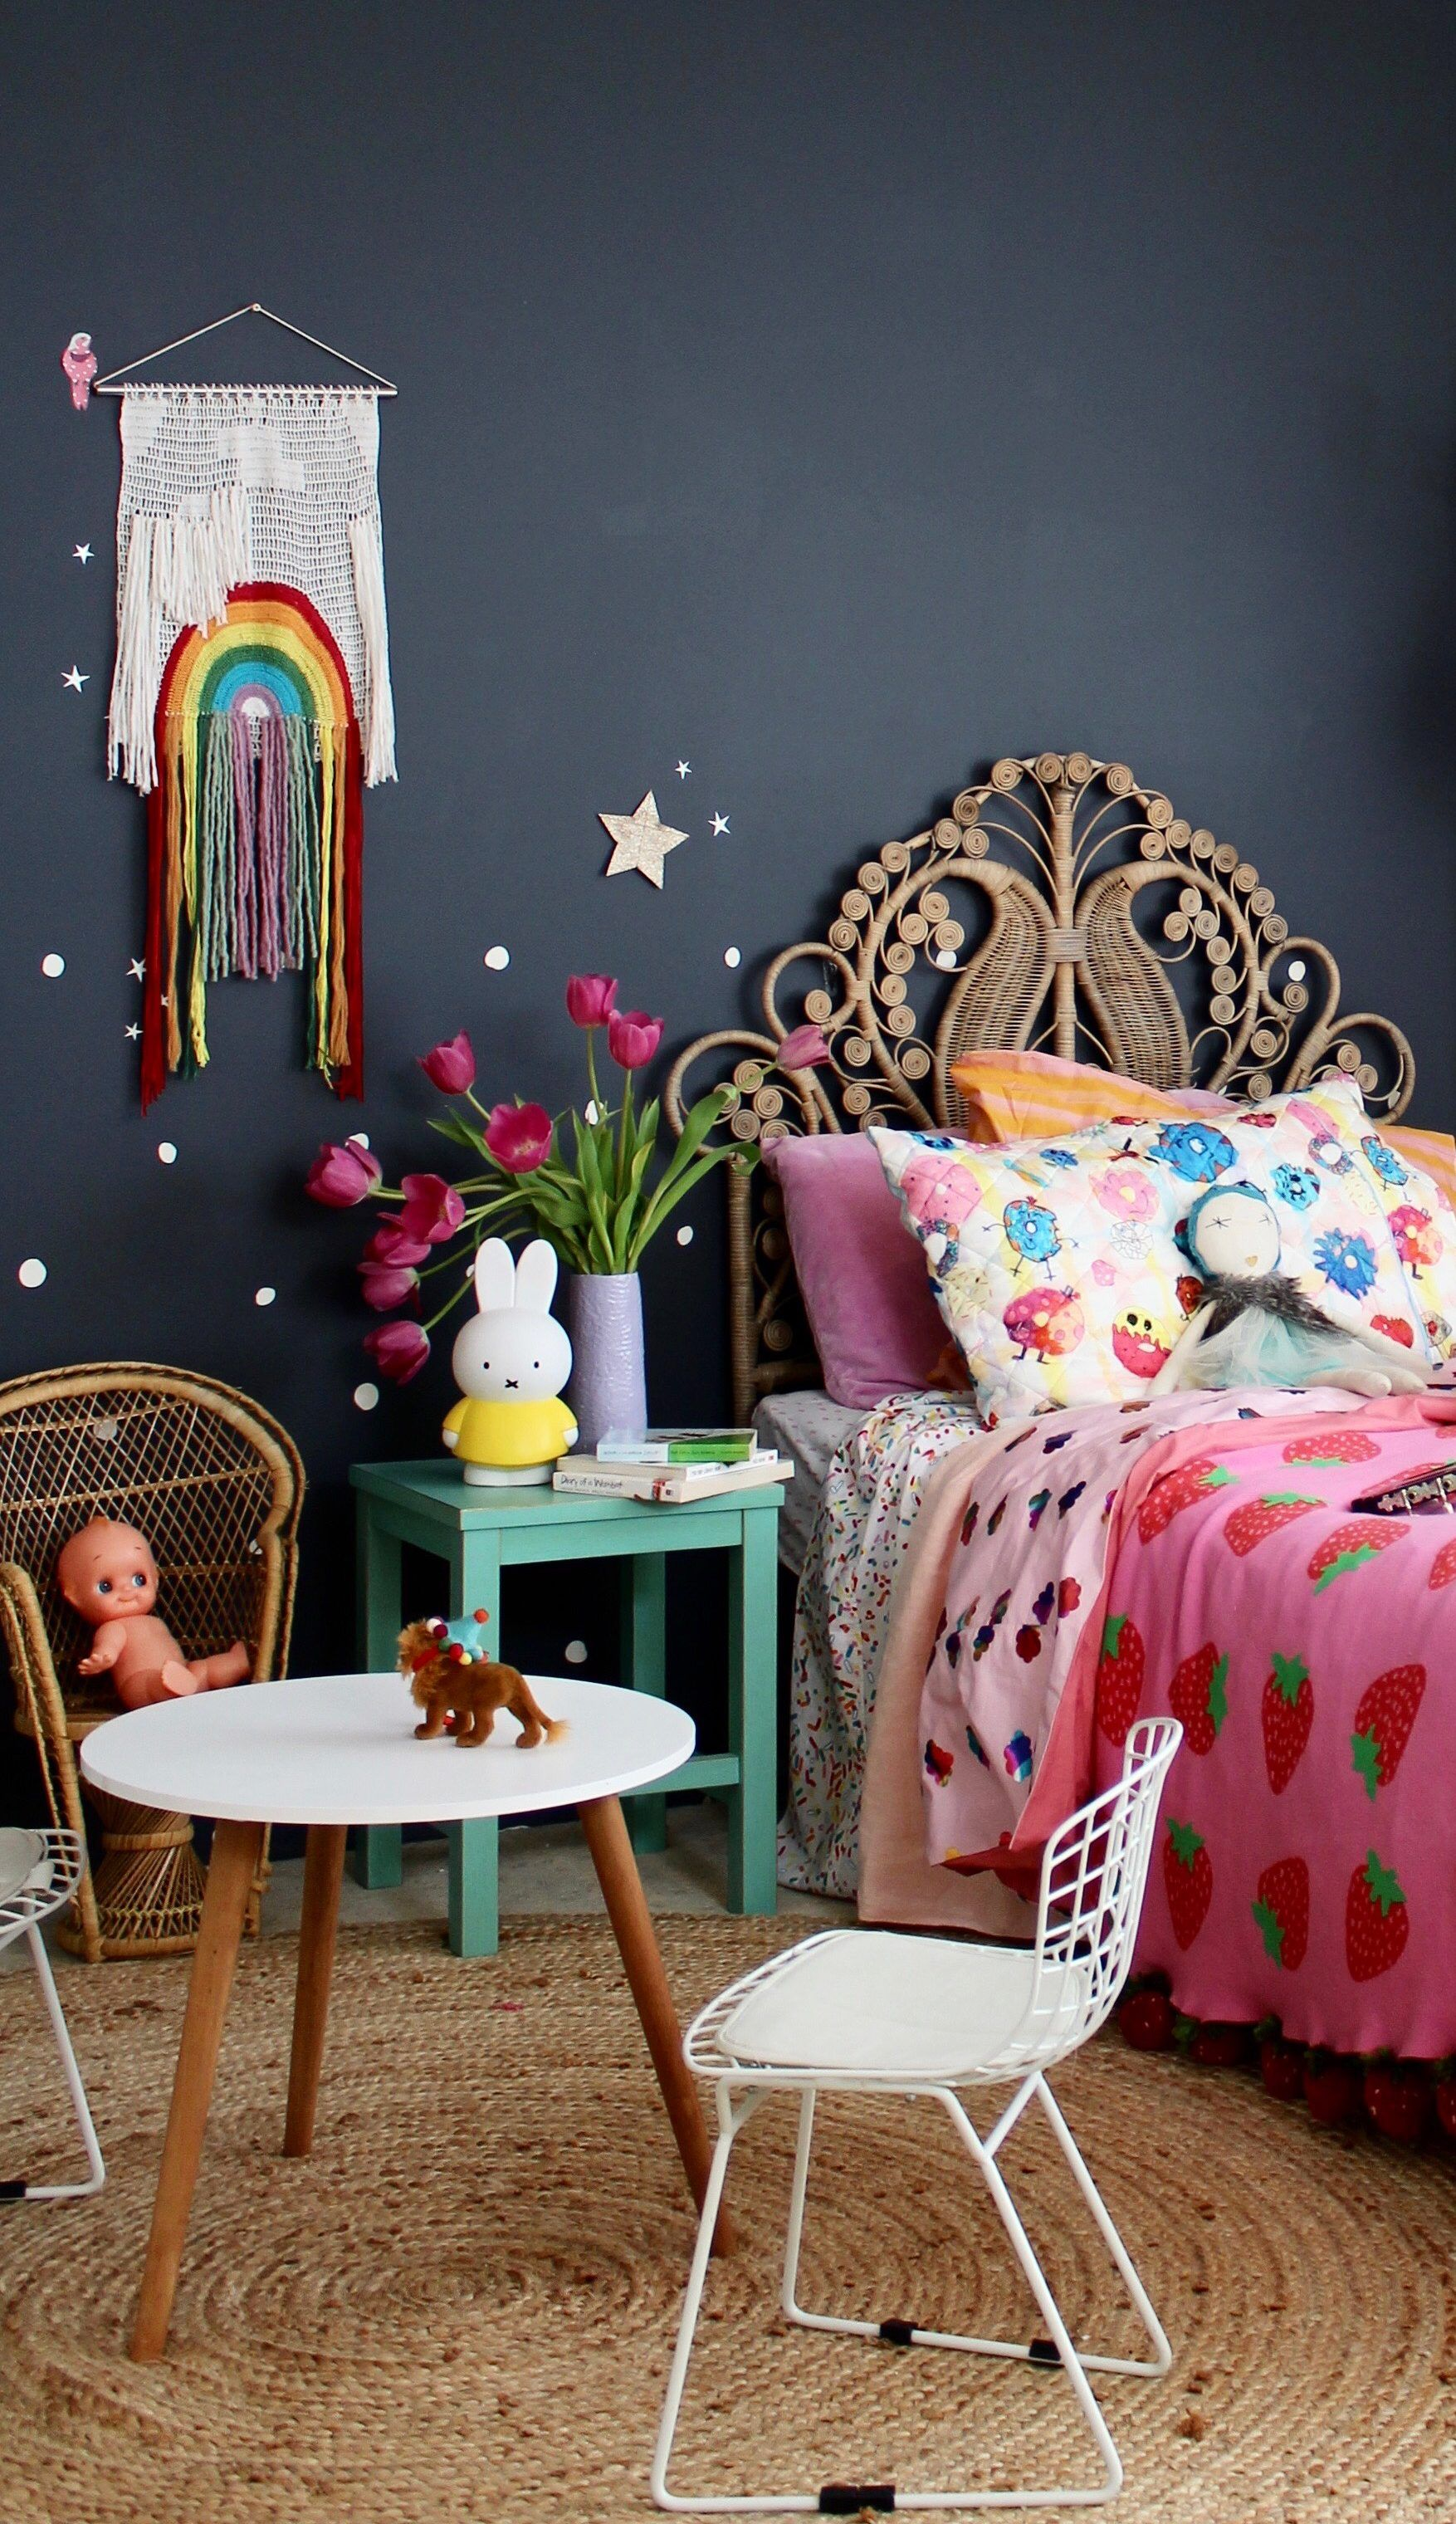 Amelia S Room Toddler Bedroom: Girls Bedroom Ideas - Shop The Look On